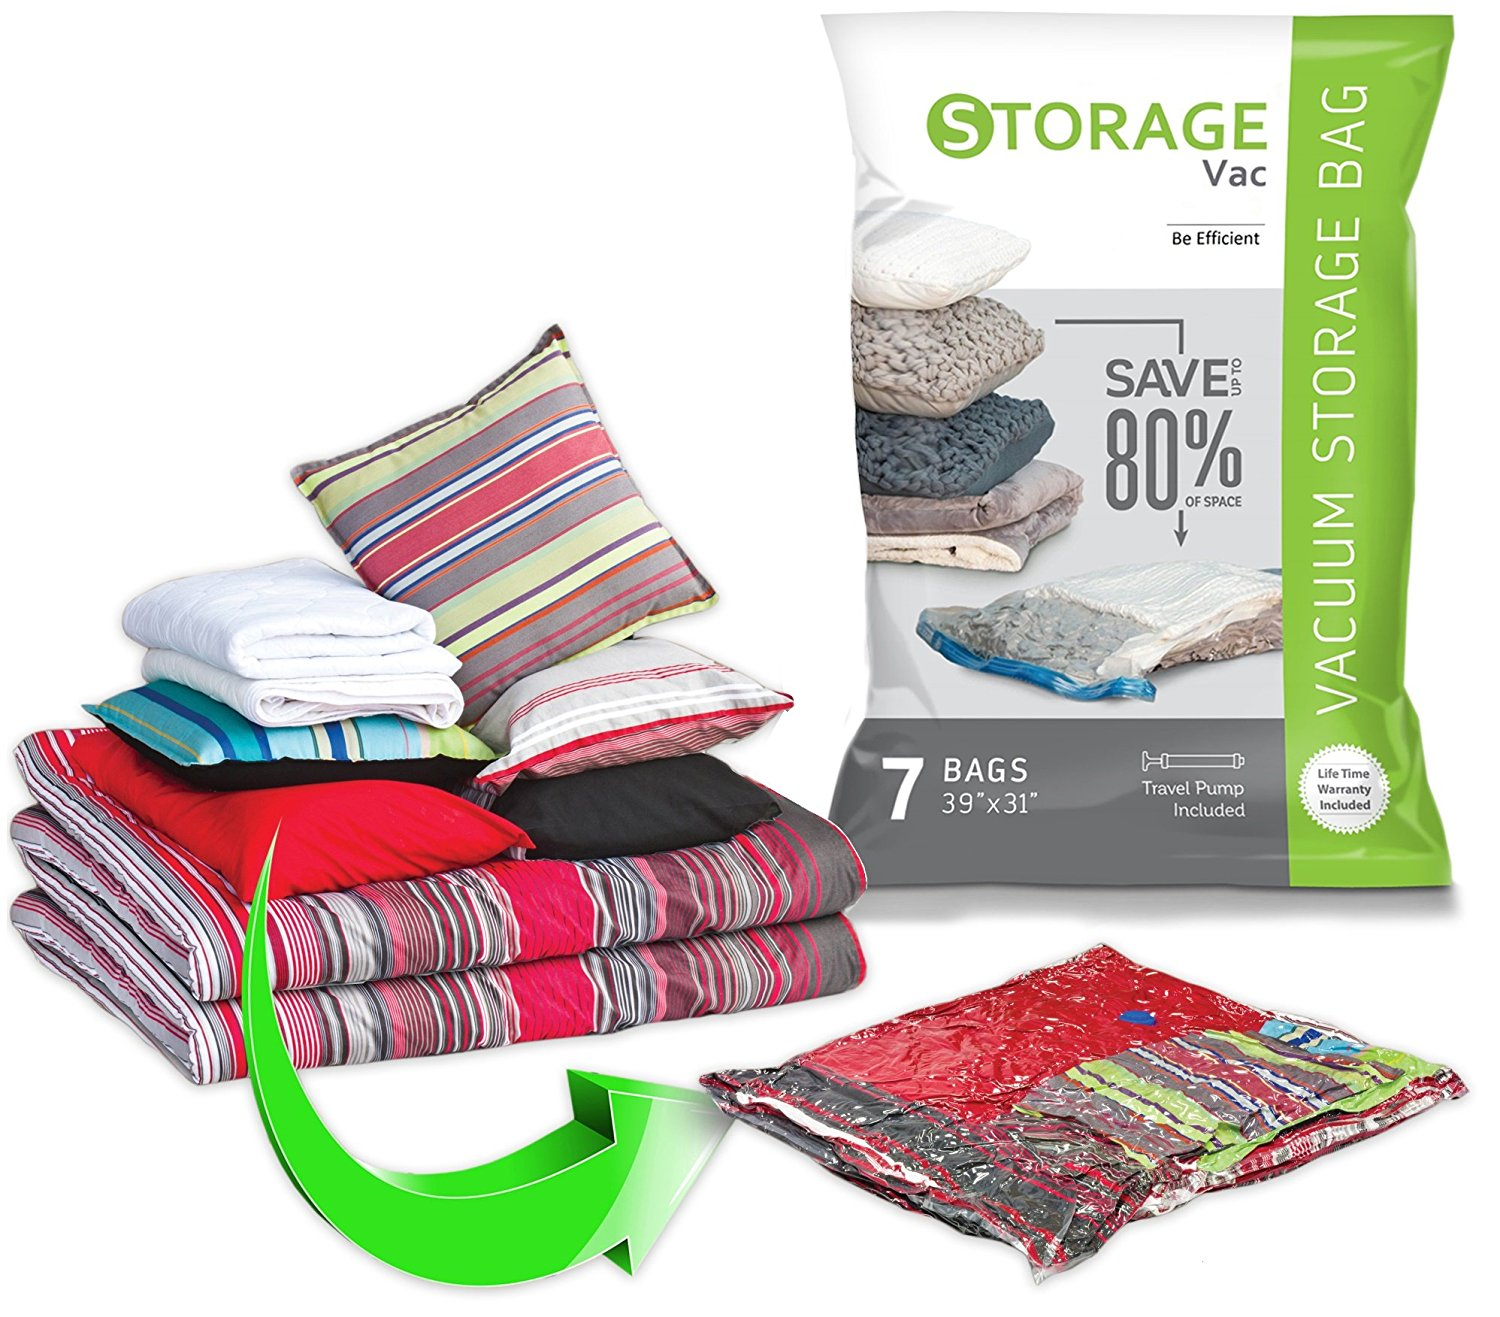 Space Saver Vacuum Storage Bags 7 Pack Jumbo 40x30 With Travel Pump